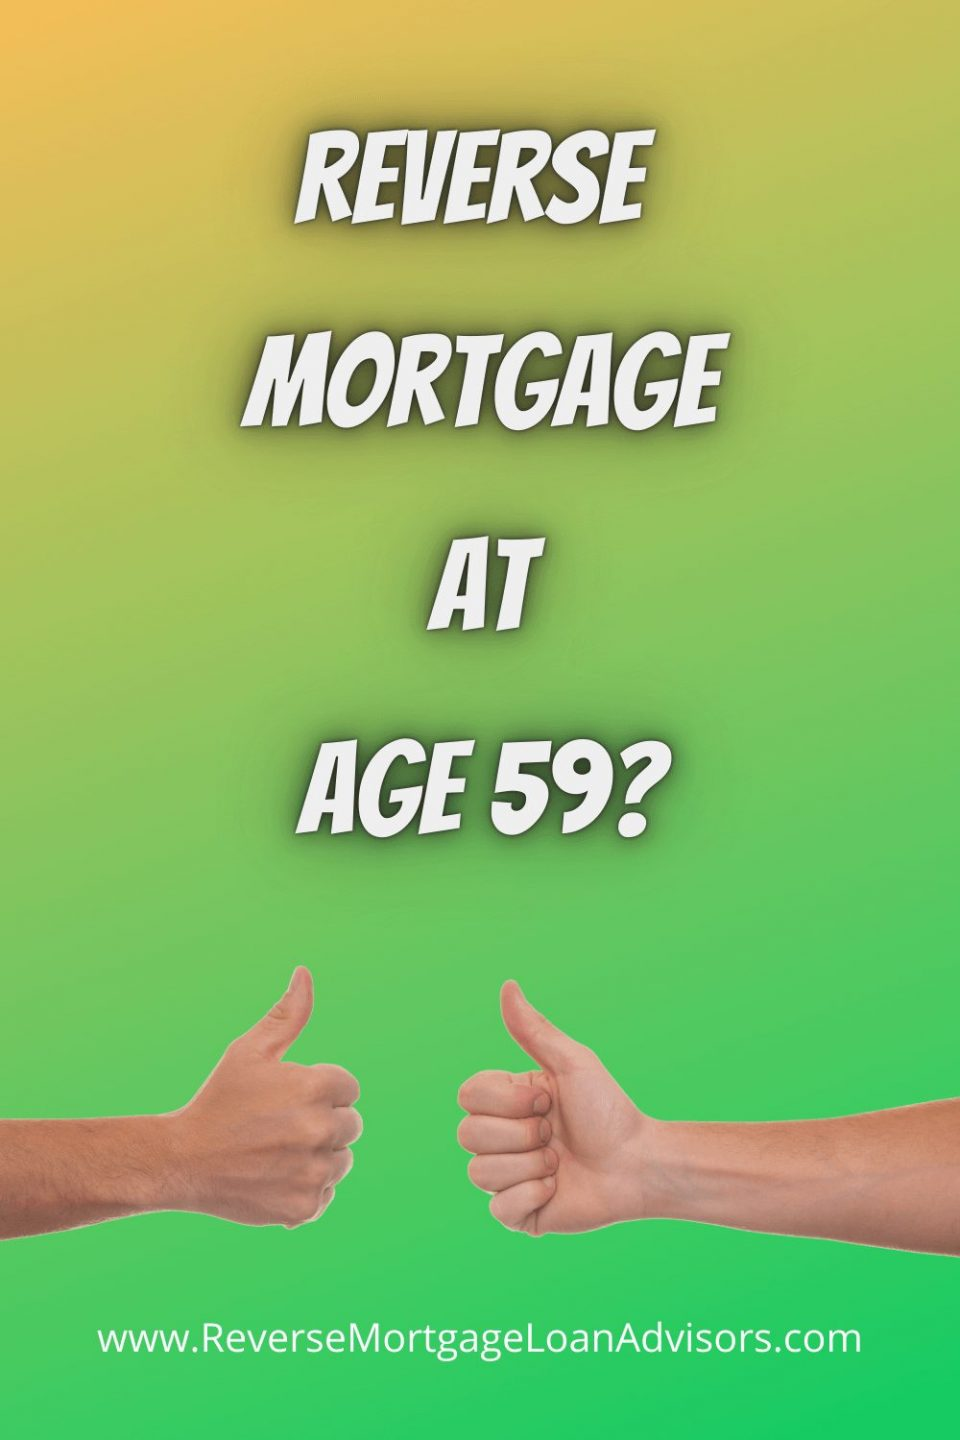 two thumbs up for the new reverse mortgage at age 59 program